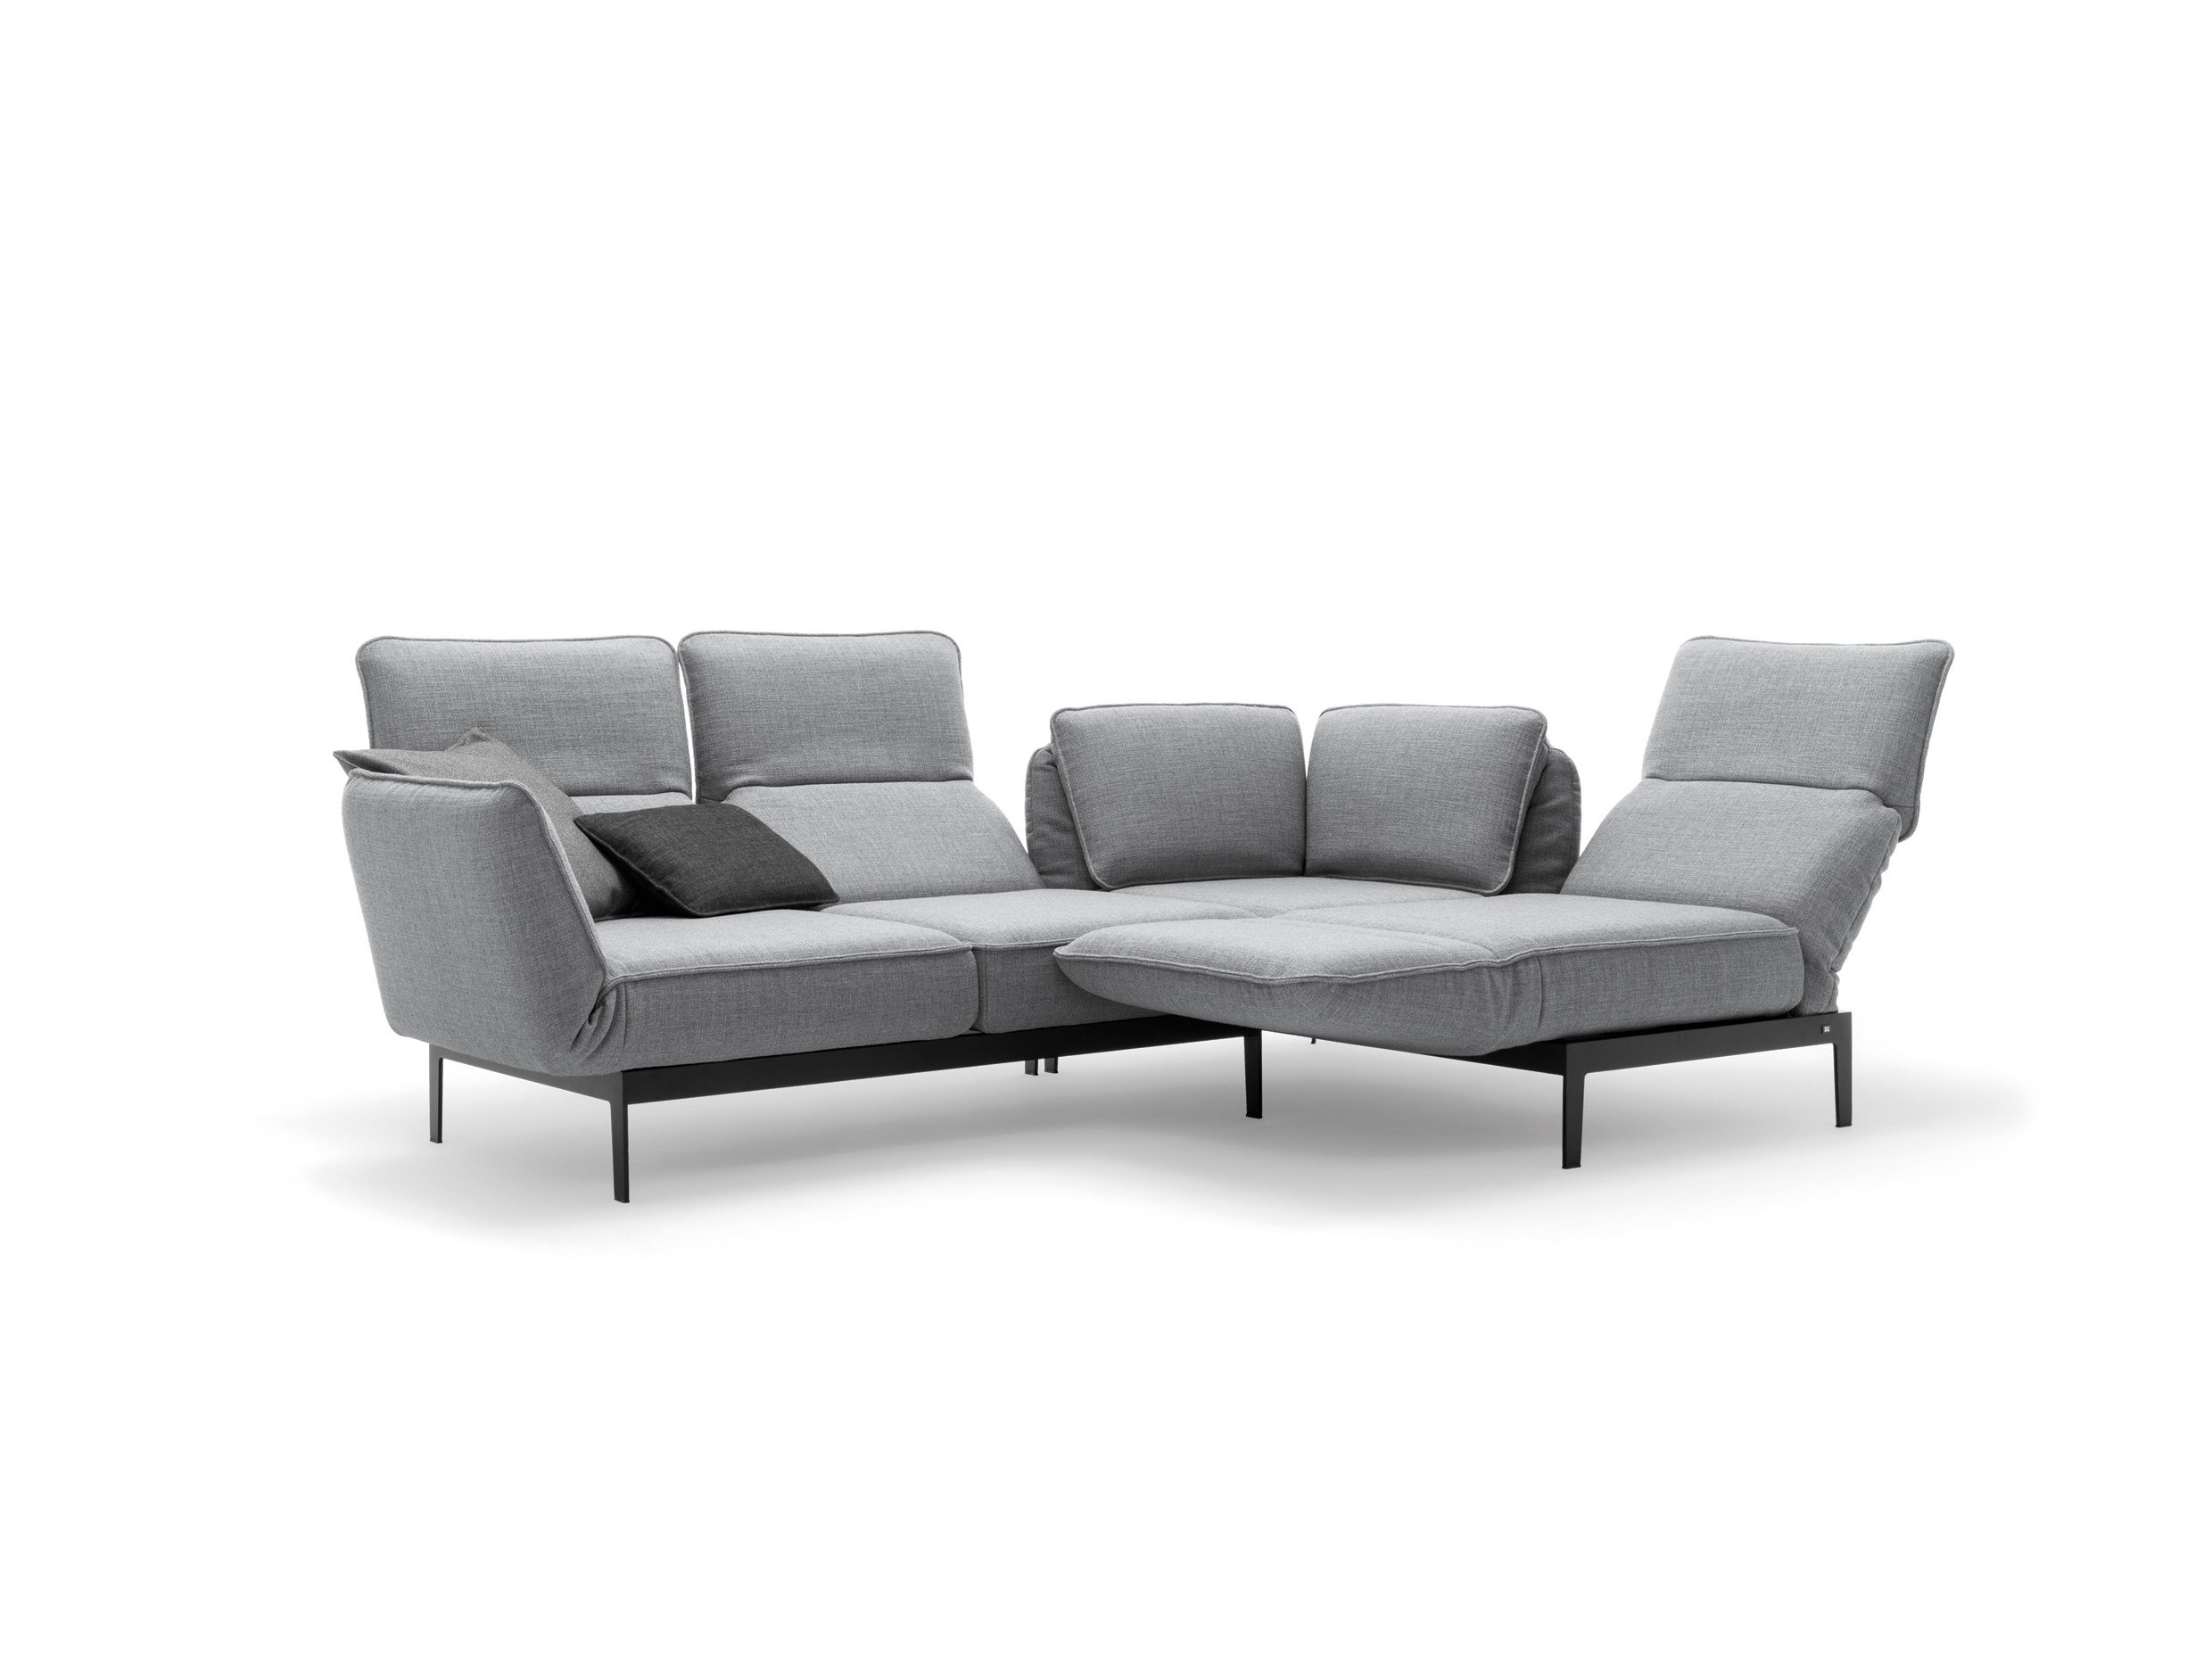 Sofa rolf benz rolf benz vero sofa high quality 3d models for Sofa benz rolf